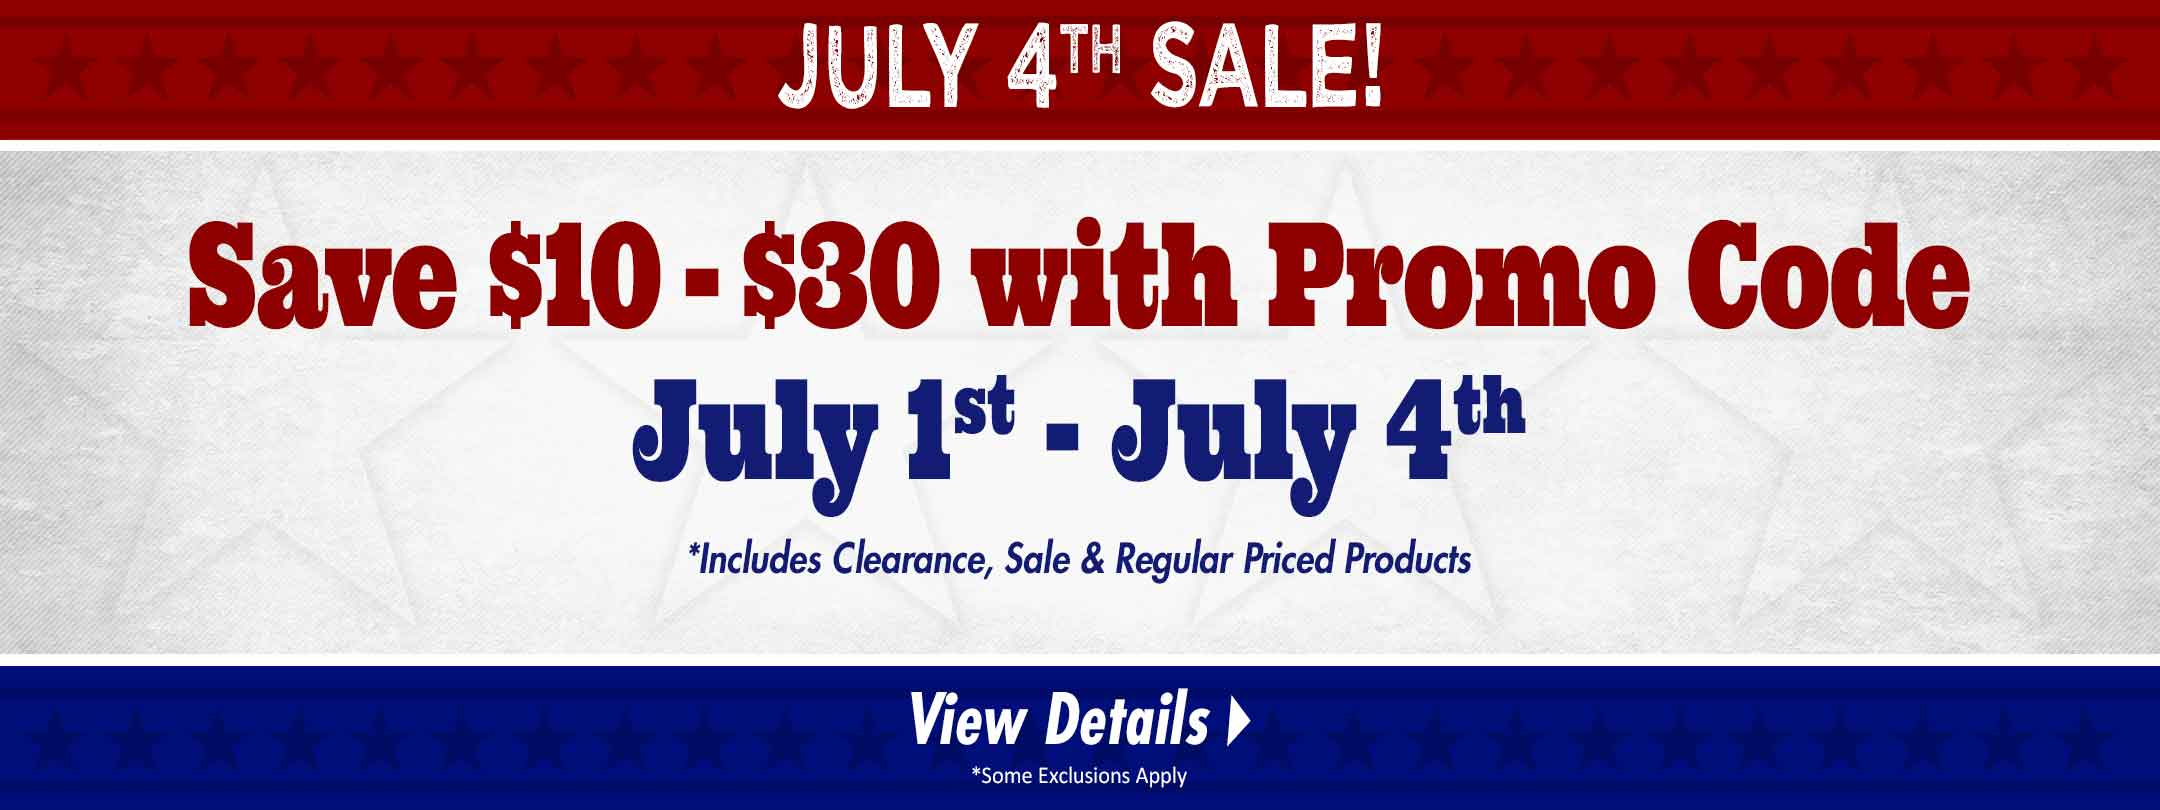 Pick Your Deal & Save $10 - $30!